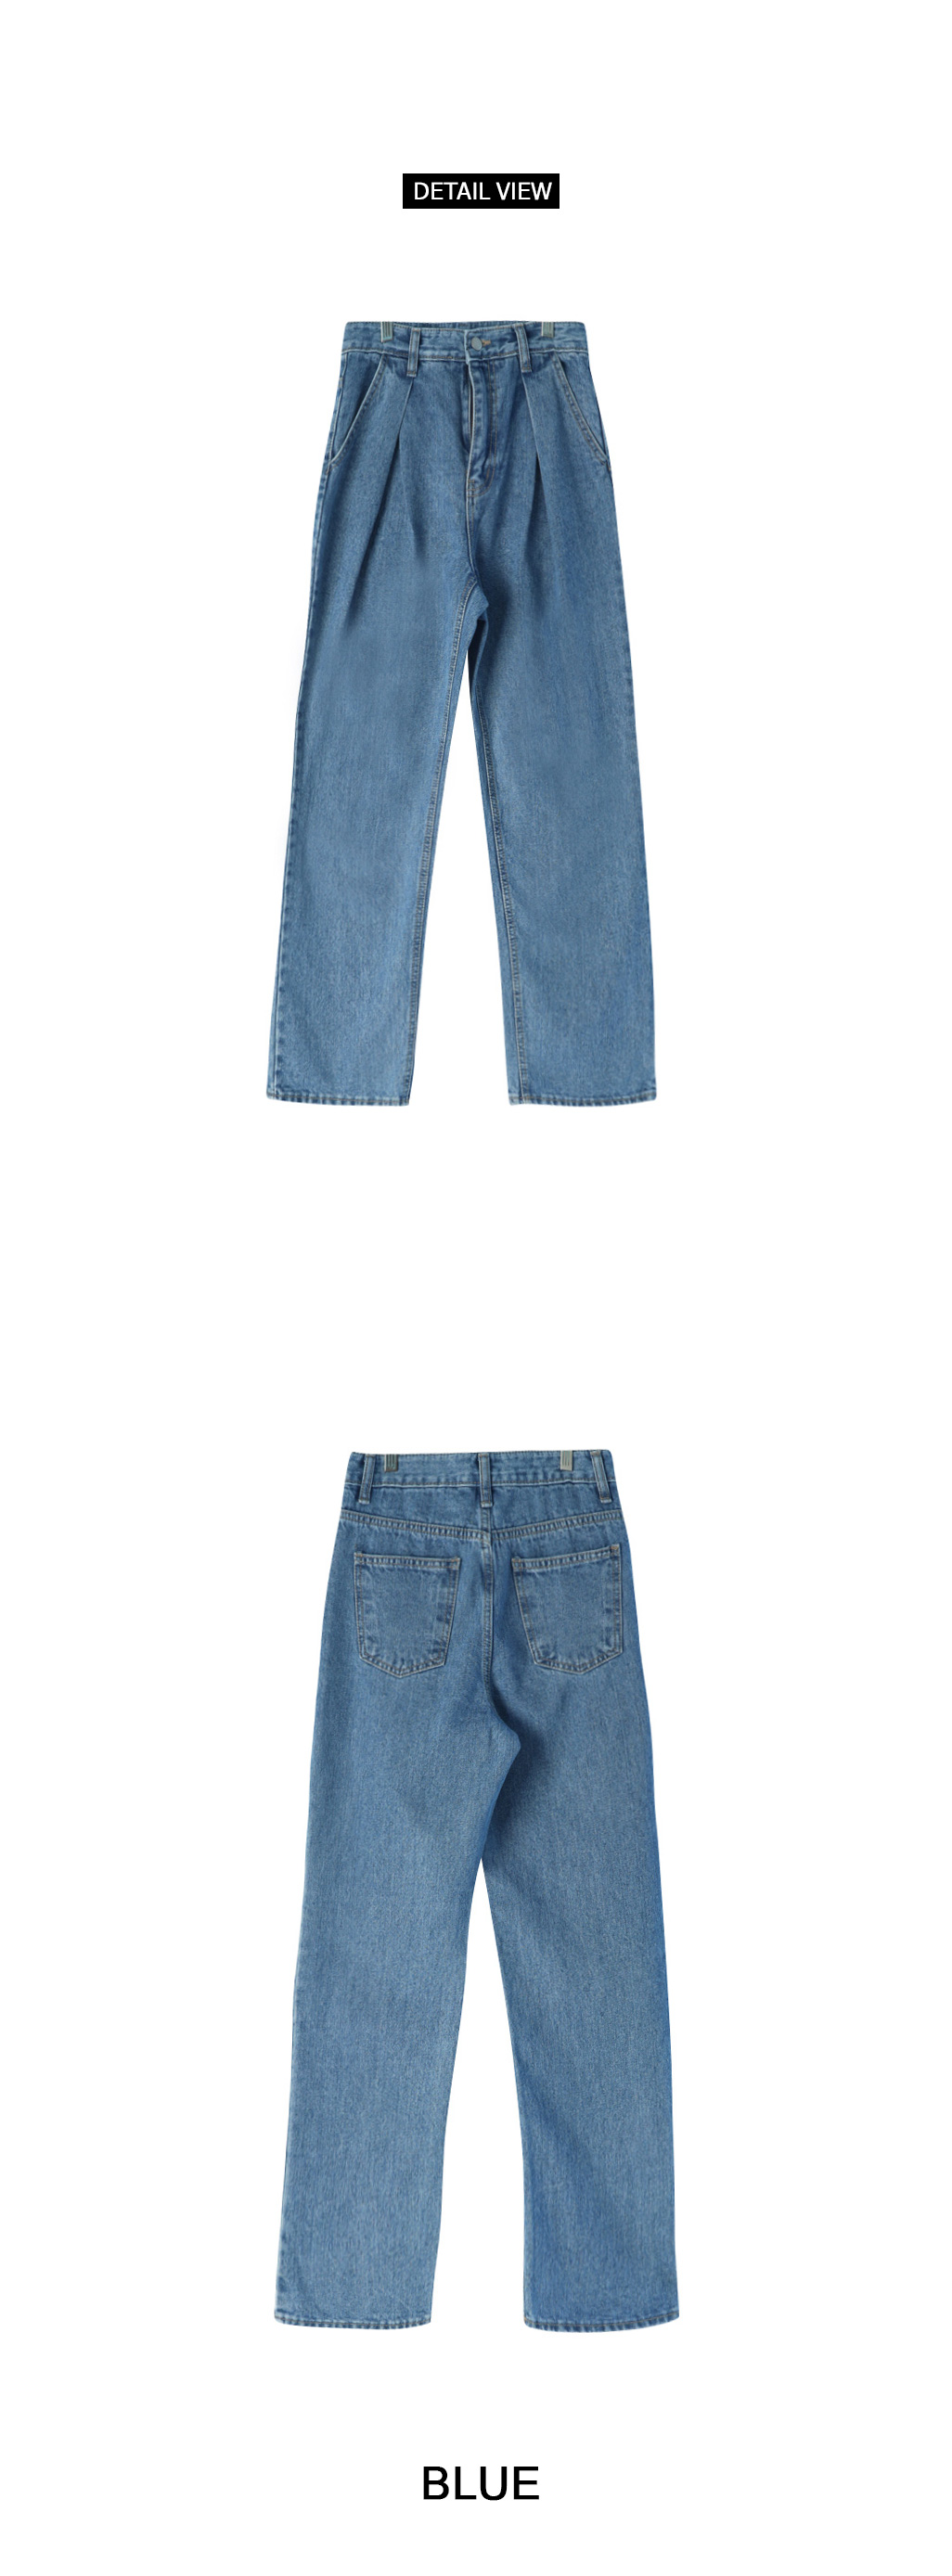 Denim pants with pin tuck pleated